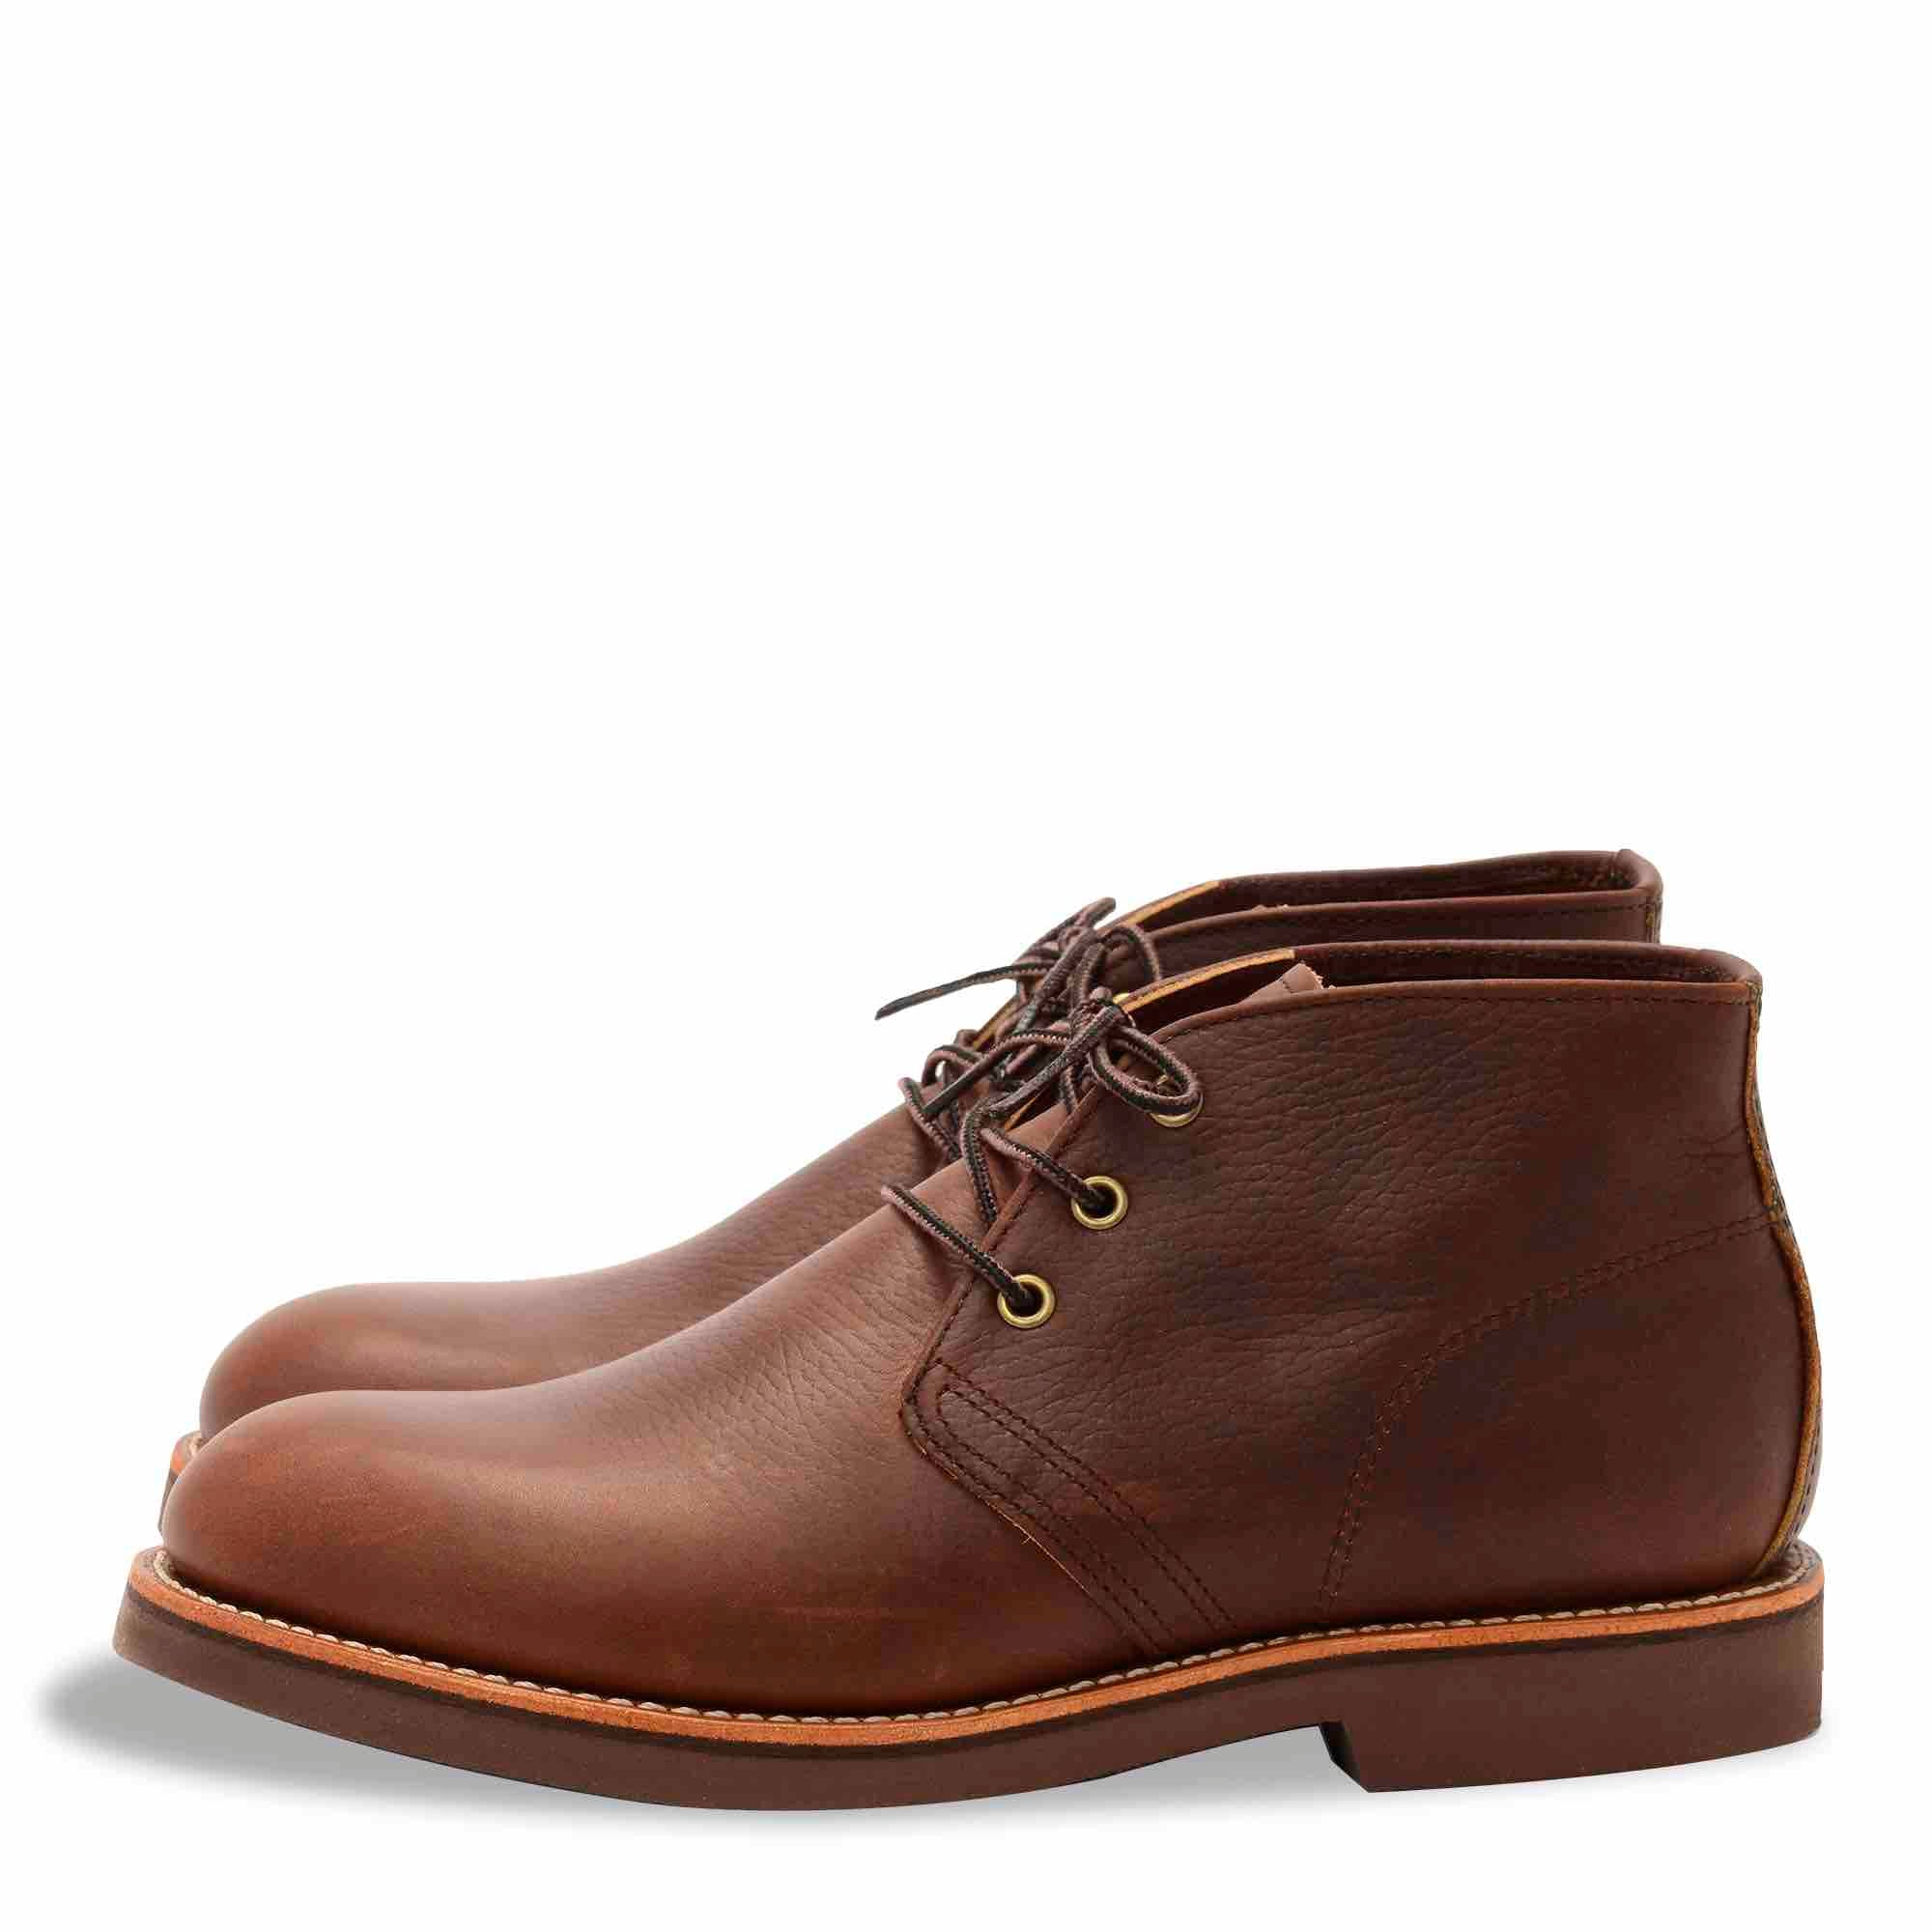 9d36457ab91 Red Wing - 9215 - Foreman Chukka (Briar Oil Slick)